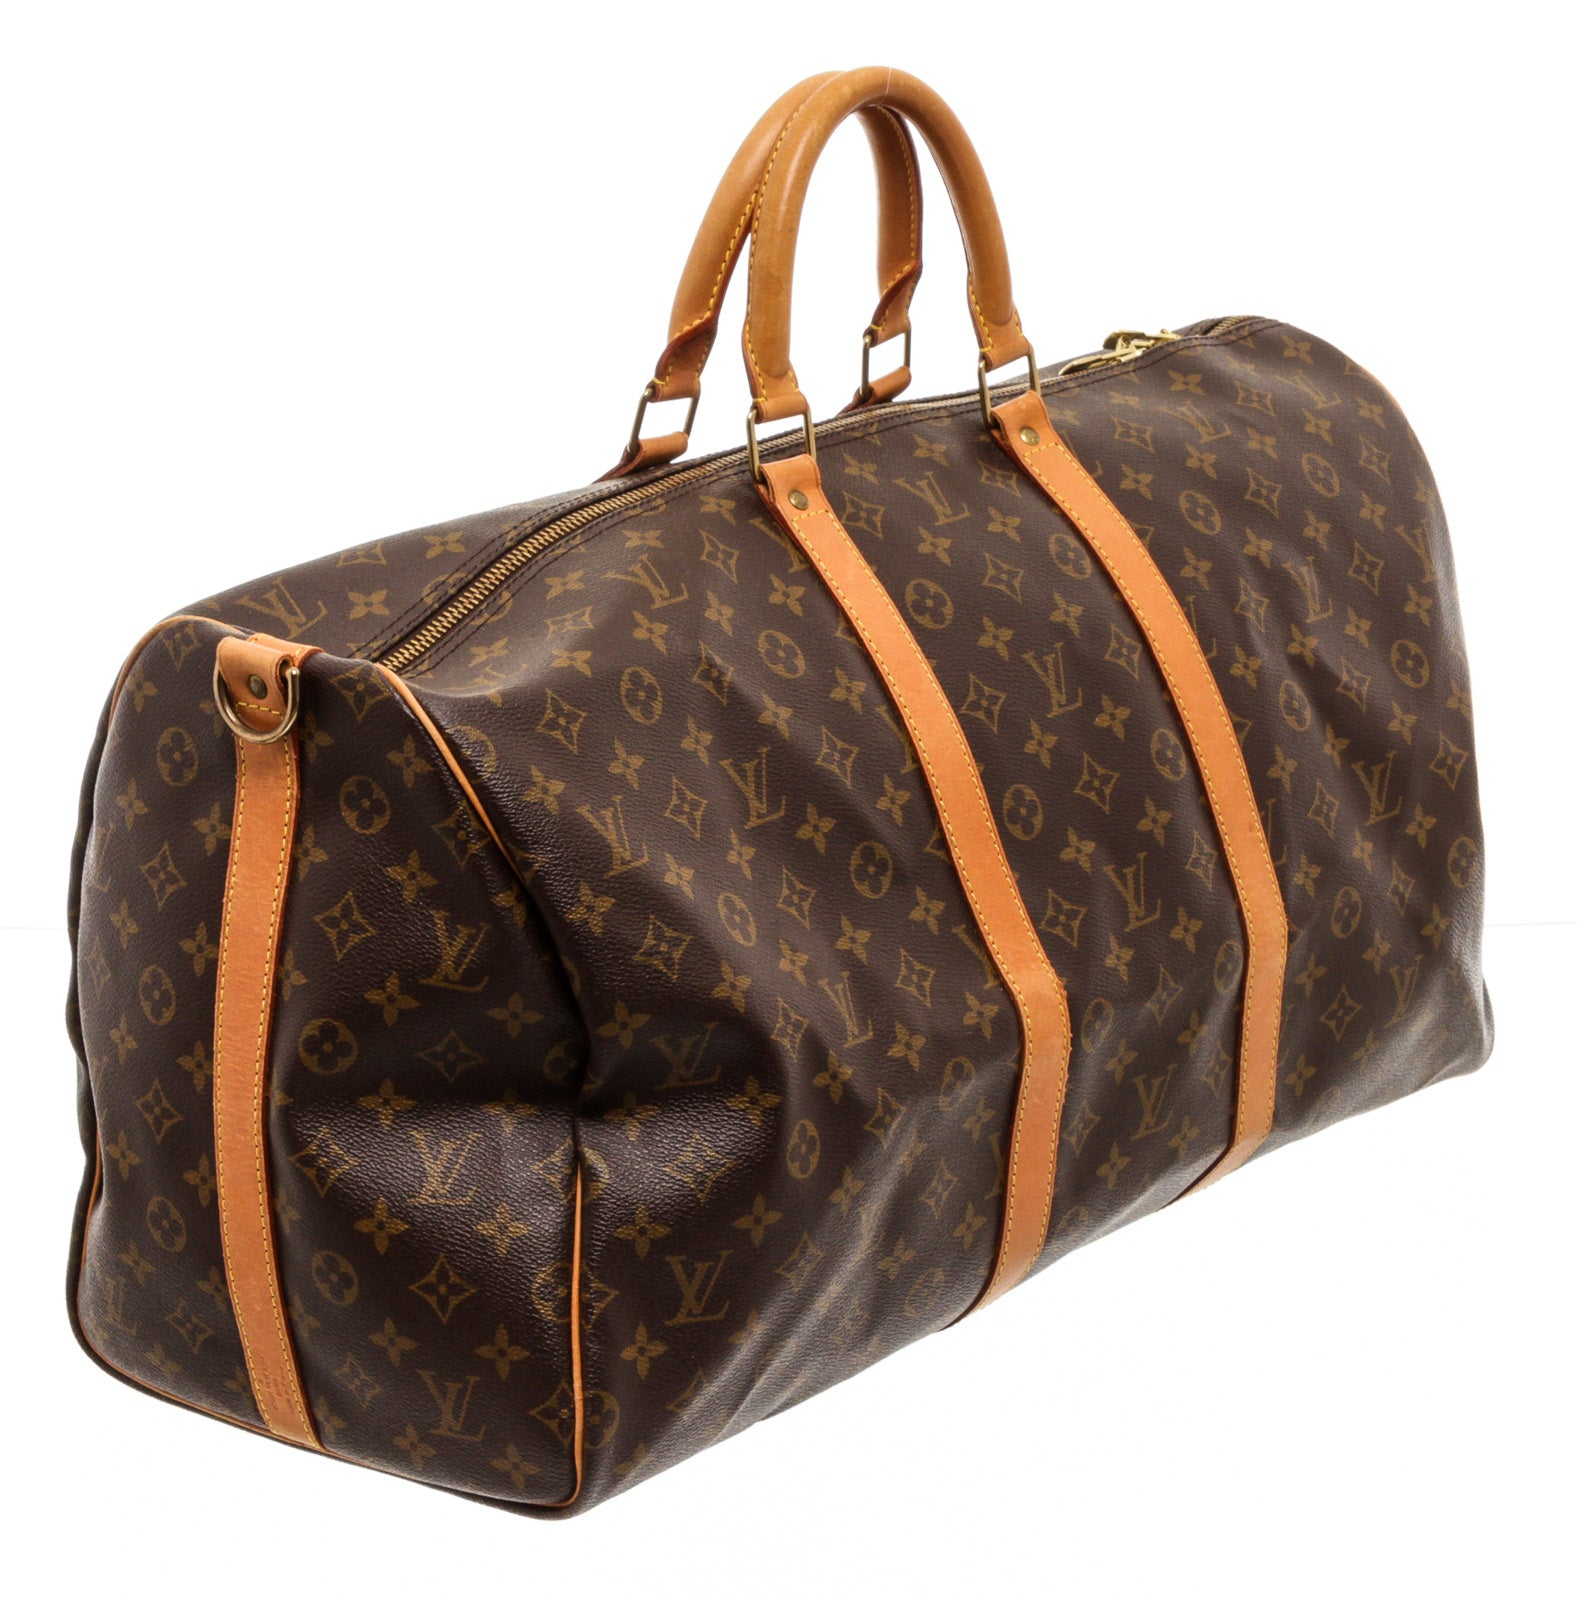 Louis Vuitton Monogram Canvas Leather Keepall 55cm Bandouliere Duffle Bag Luggage